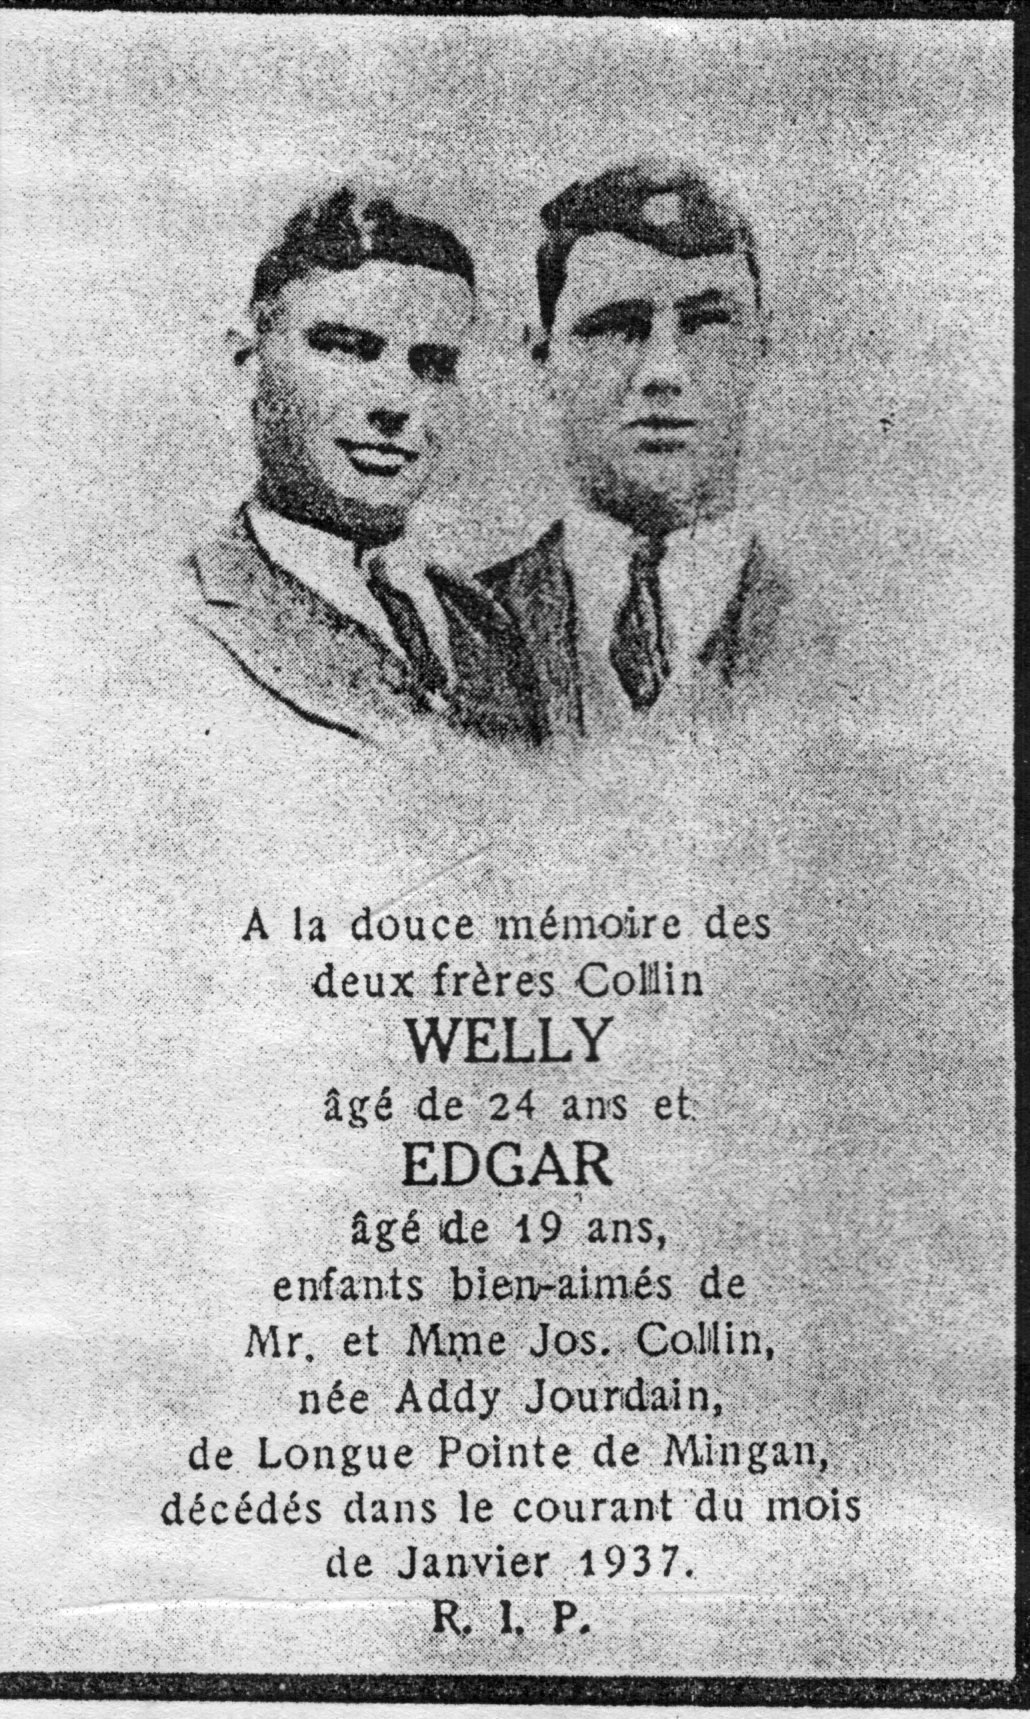 Welly et Edgar Collin